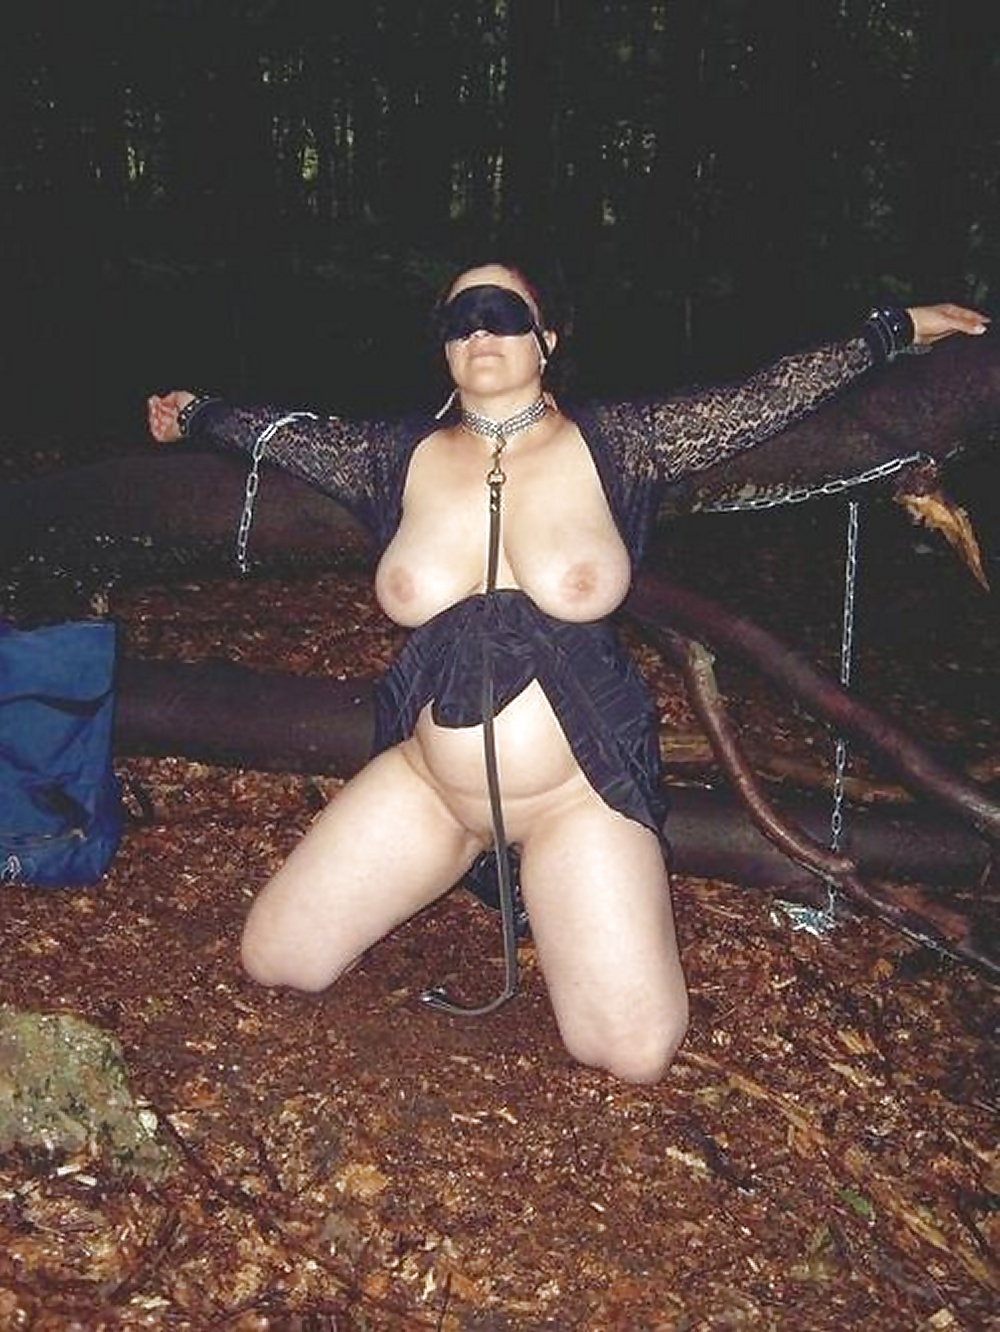 bdsm Wife couple outdoor